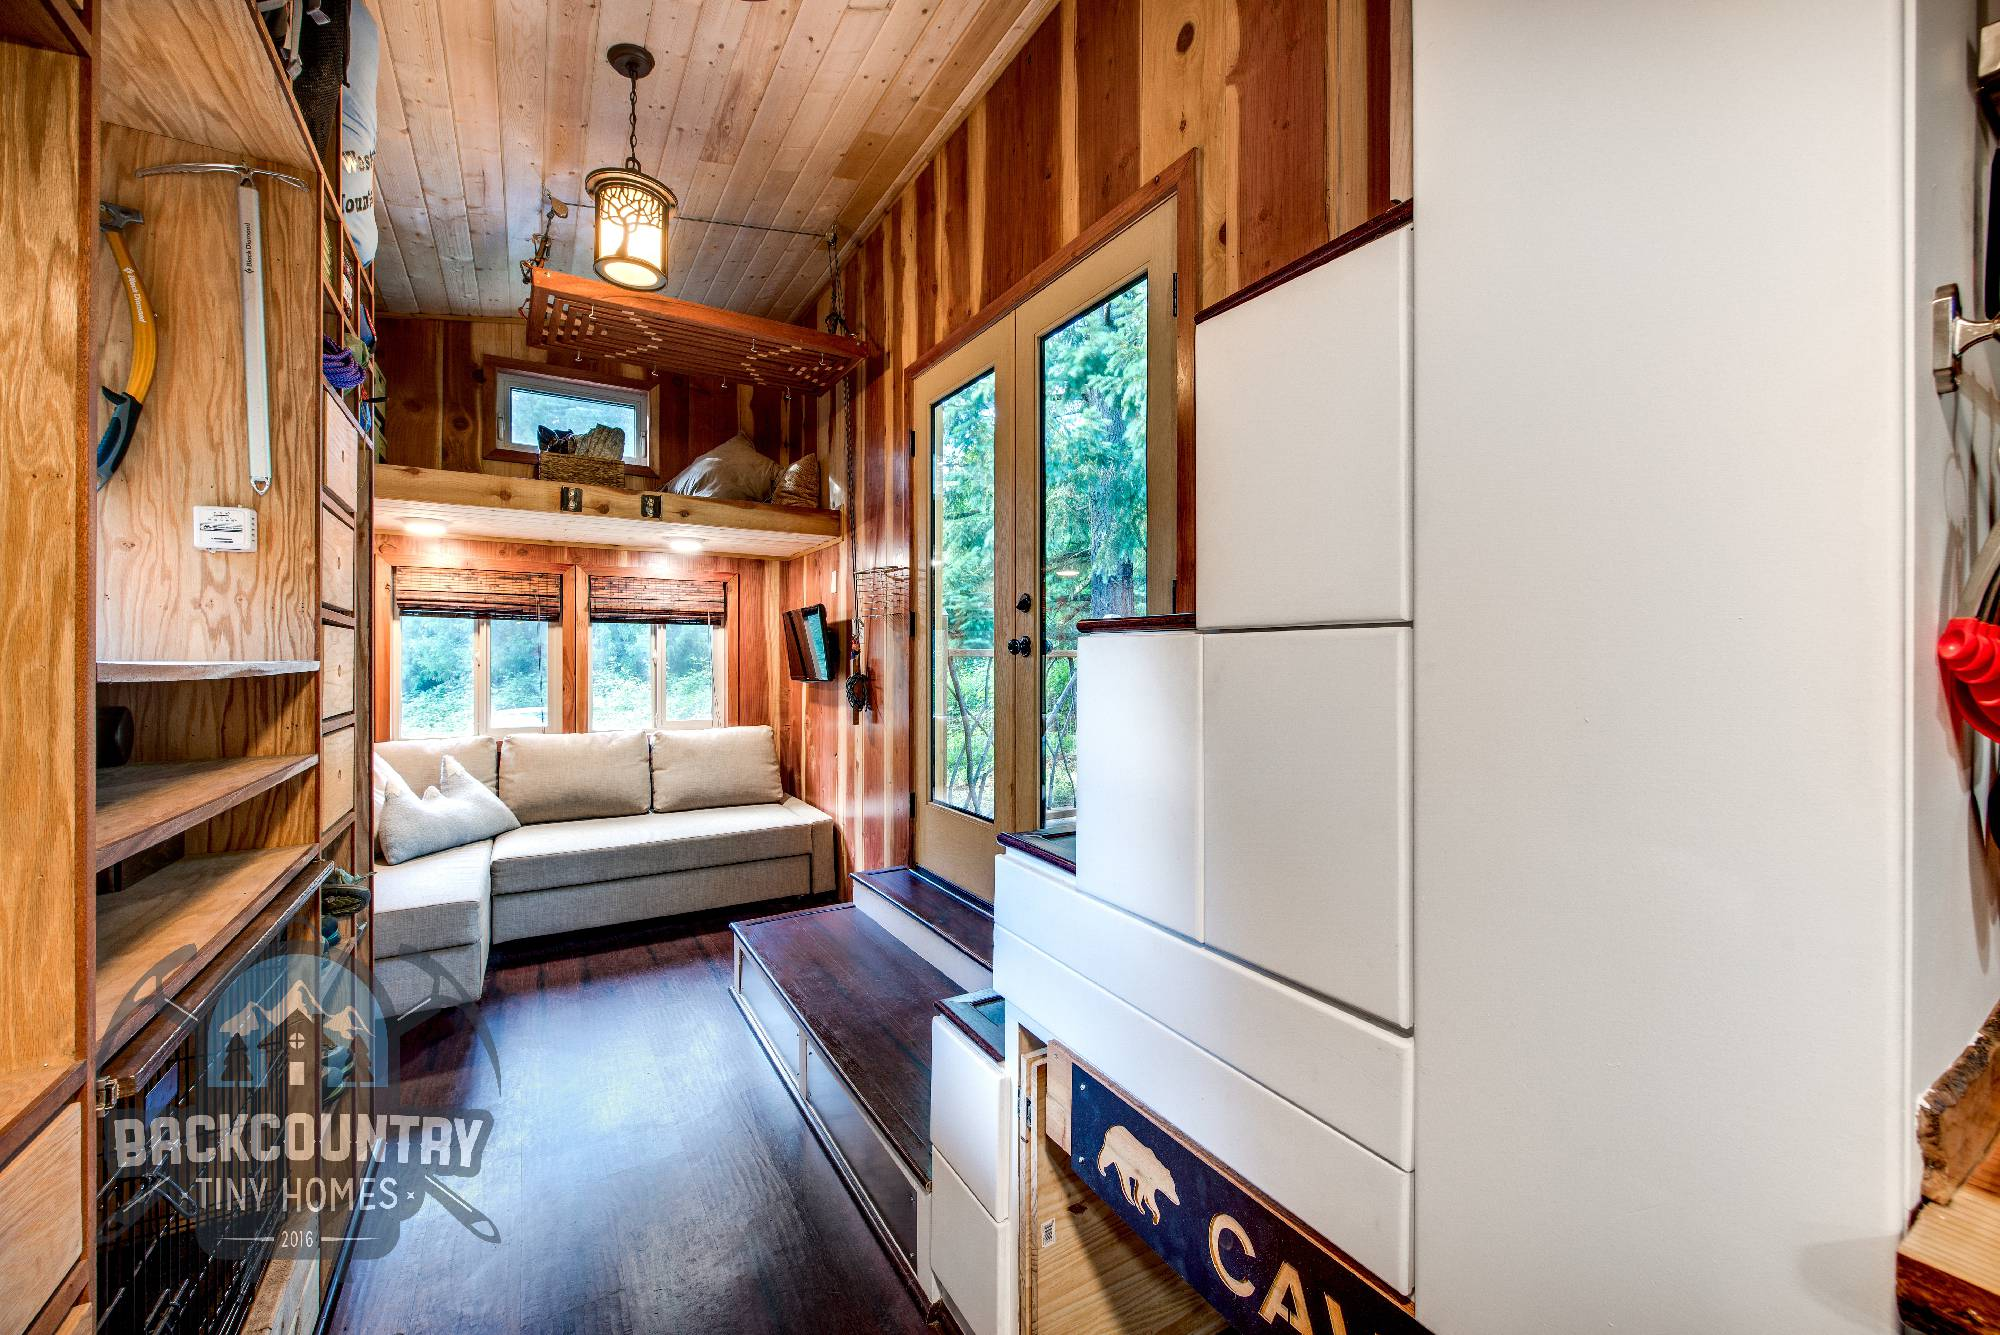 Luke Amp Tina S Basecamp Tiny House